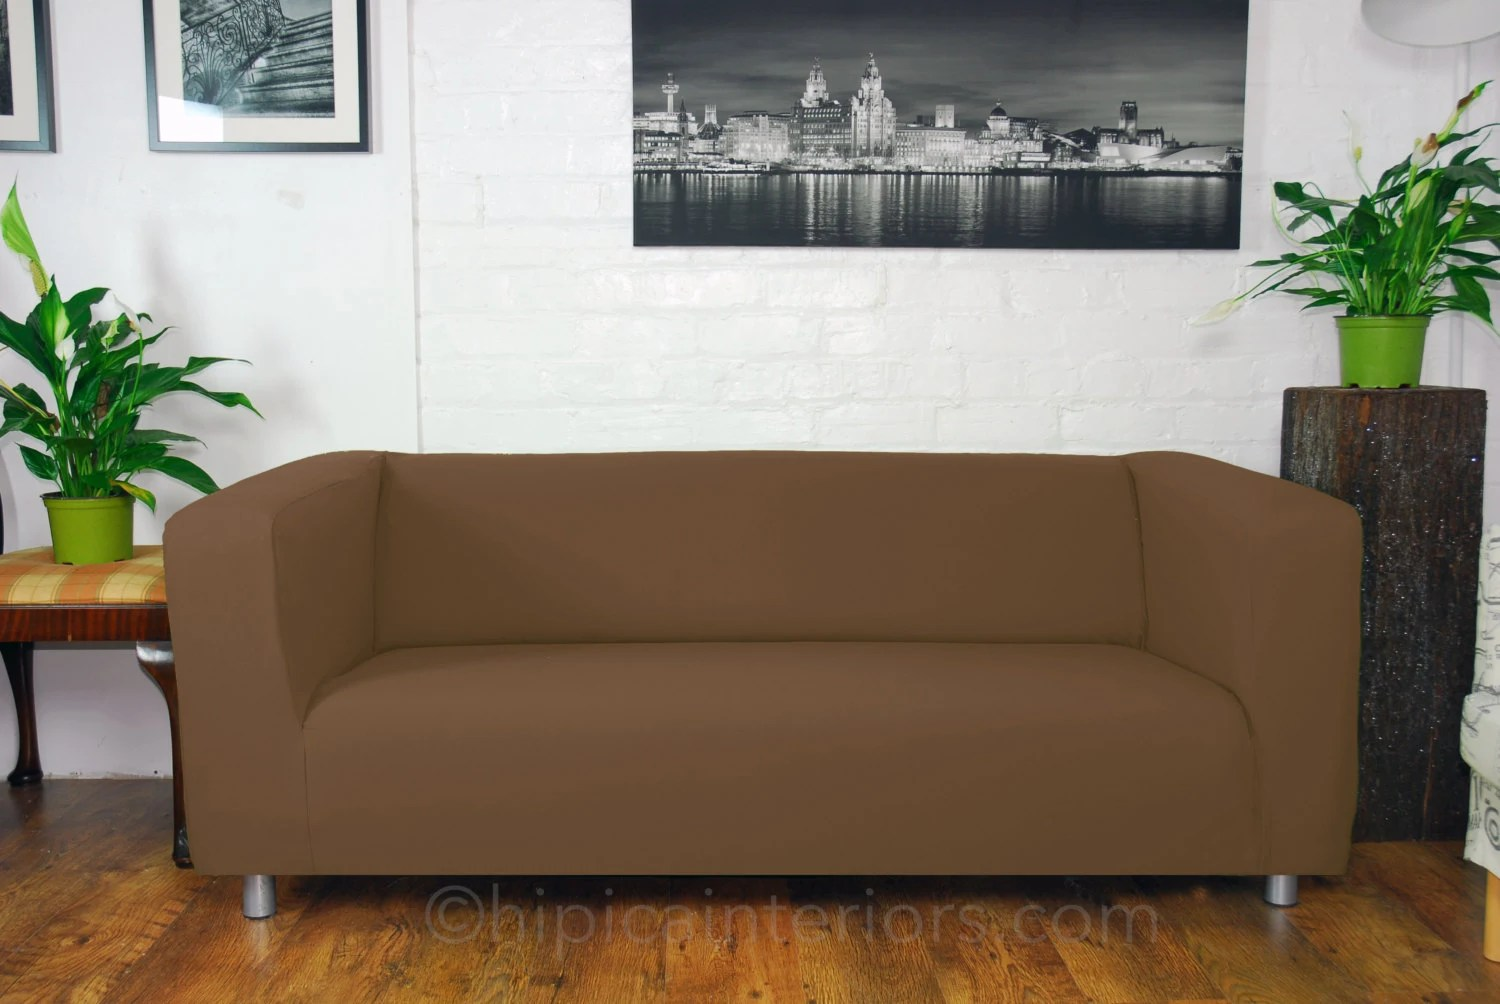 sofa 250cm comfortable bed uk slip cover to fit the ikea klippan 4 seat etsy image 0